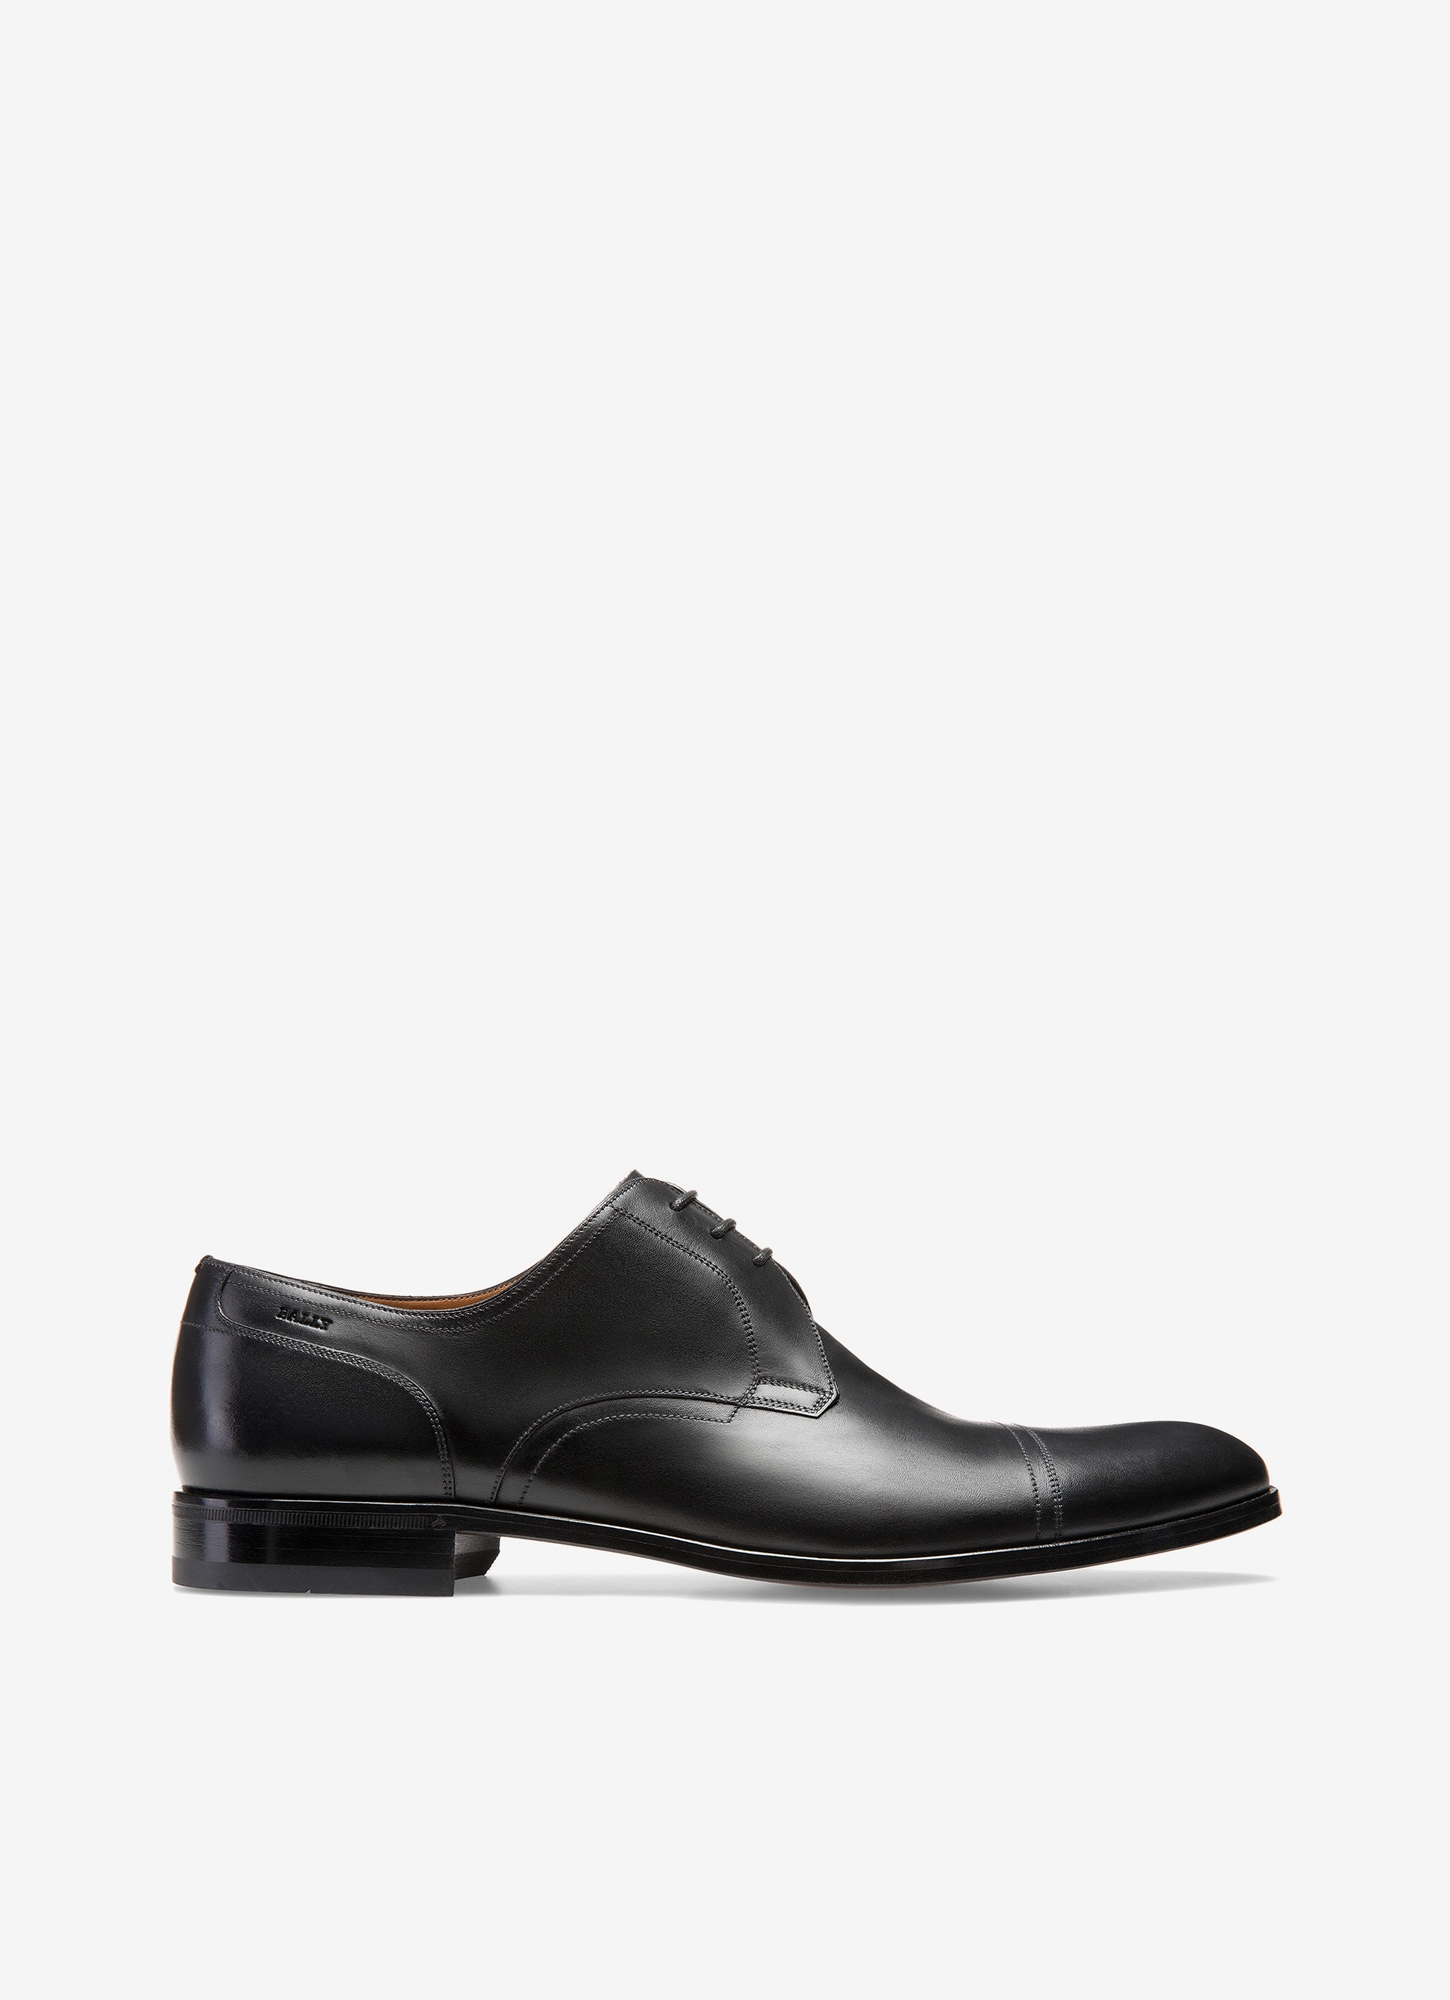 Bally Suit Shoes 004